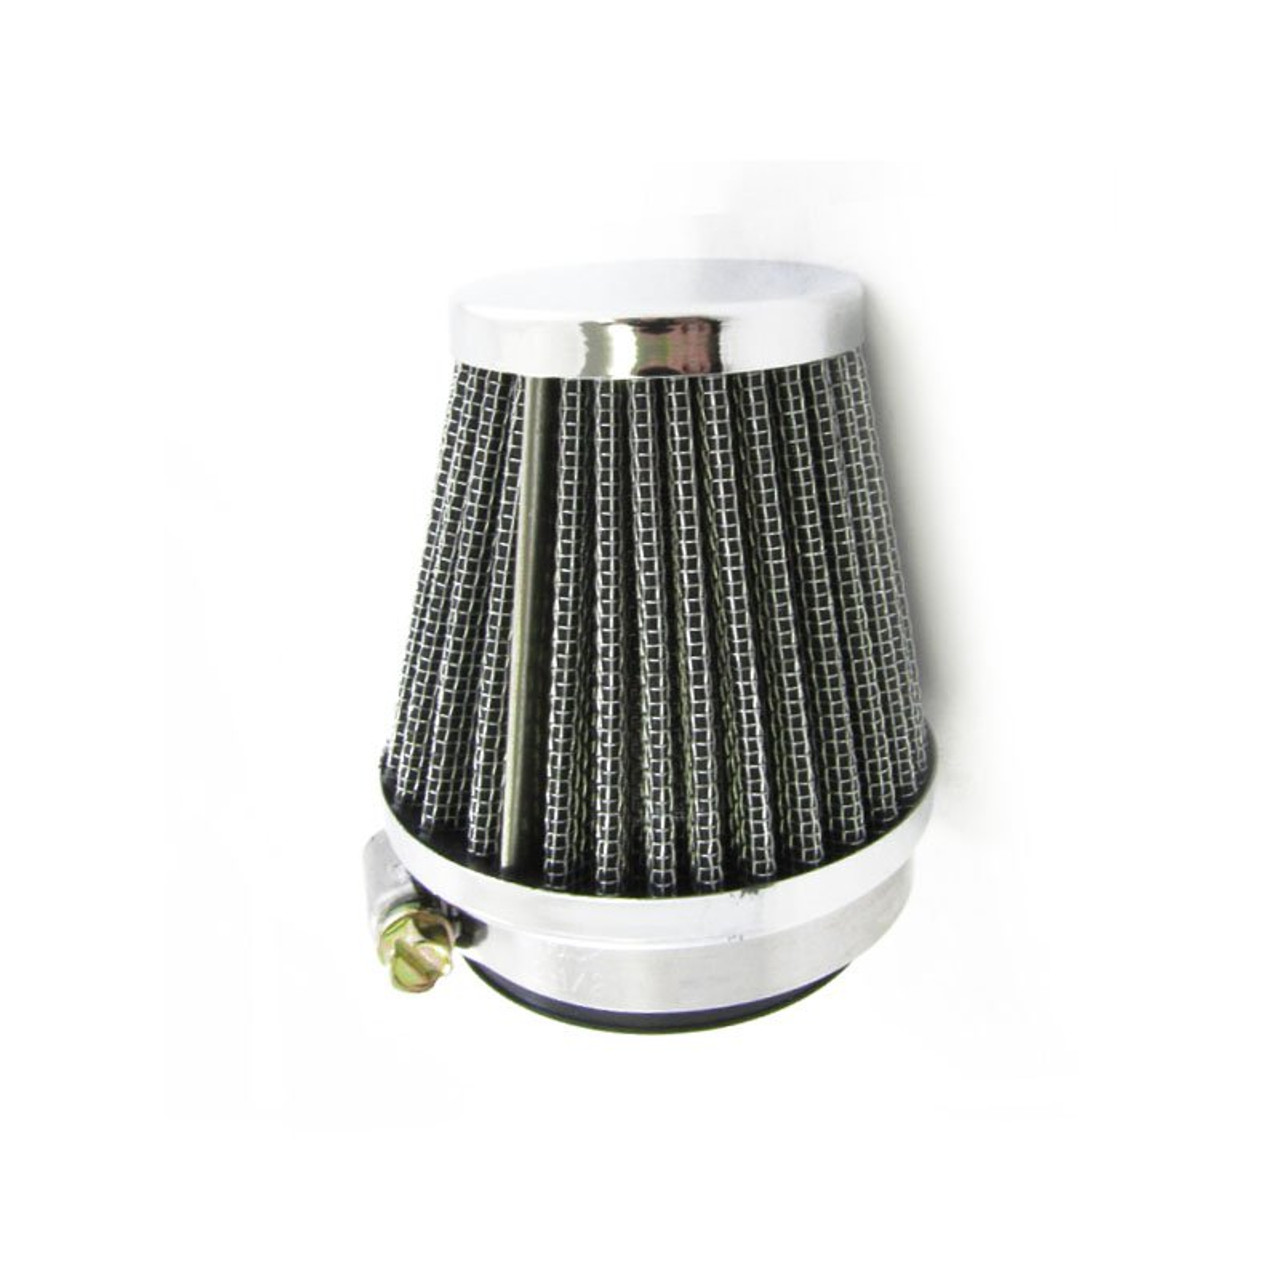 Motorcycle Round Power Pod Filter 35mm - Free NZ Shipping